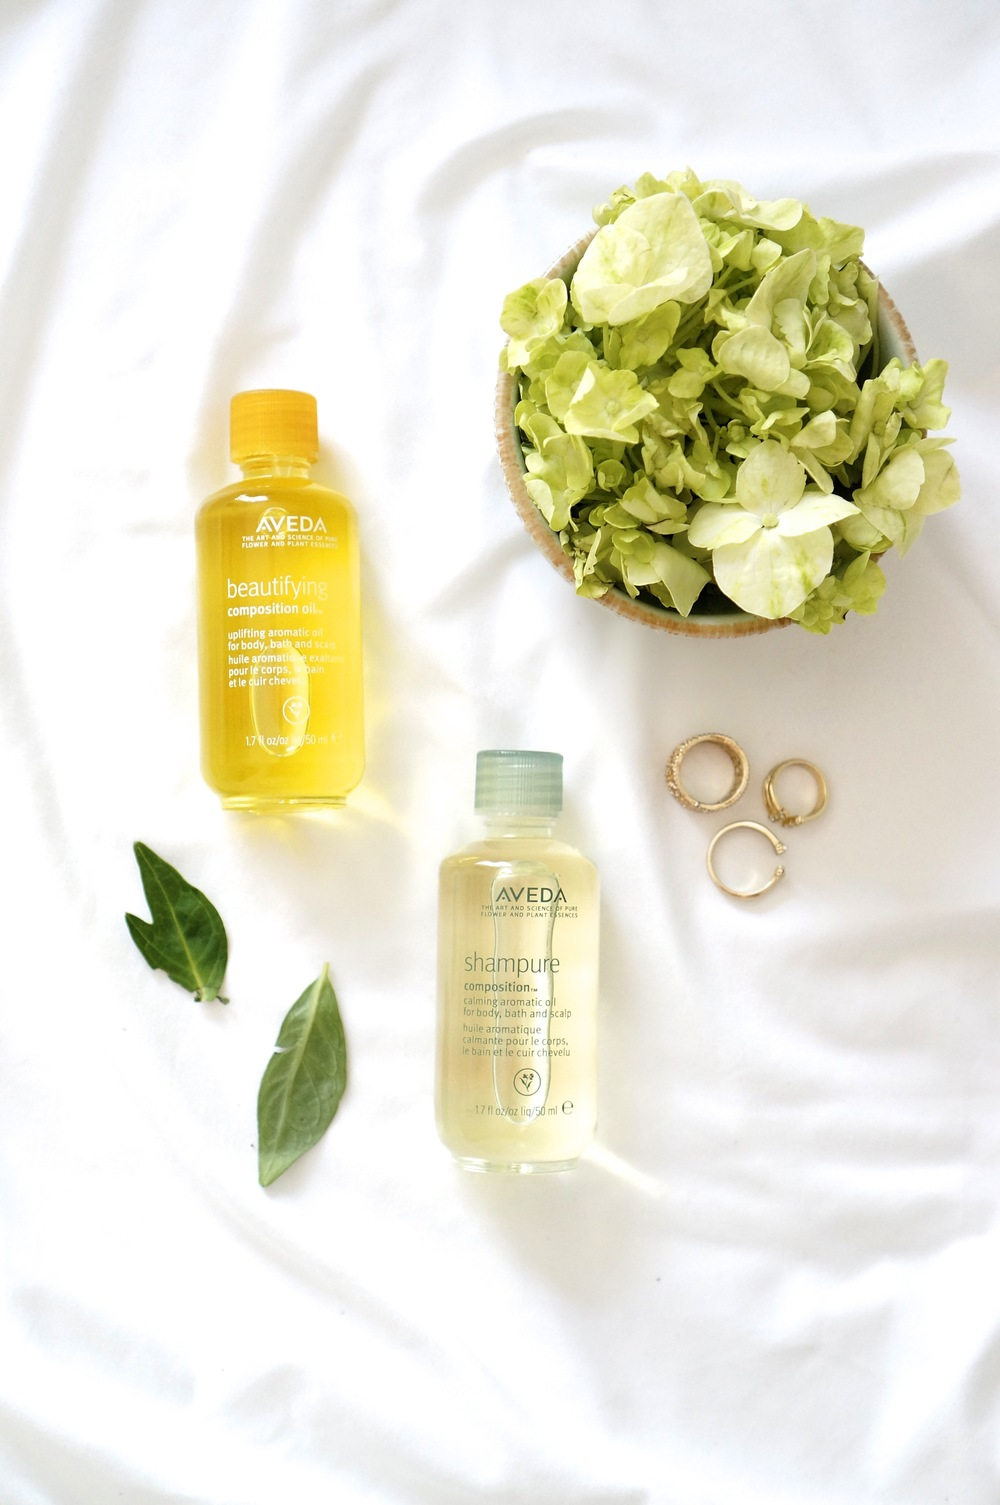 AVEDA BEAUTIFYING COMPOSITION OIL   AND   SHAMPURE COMPOSITION OIL